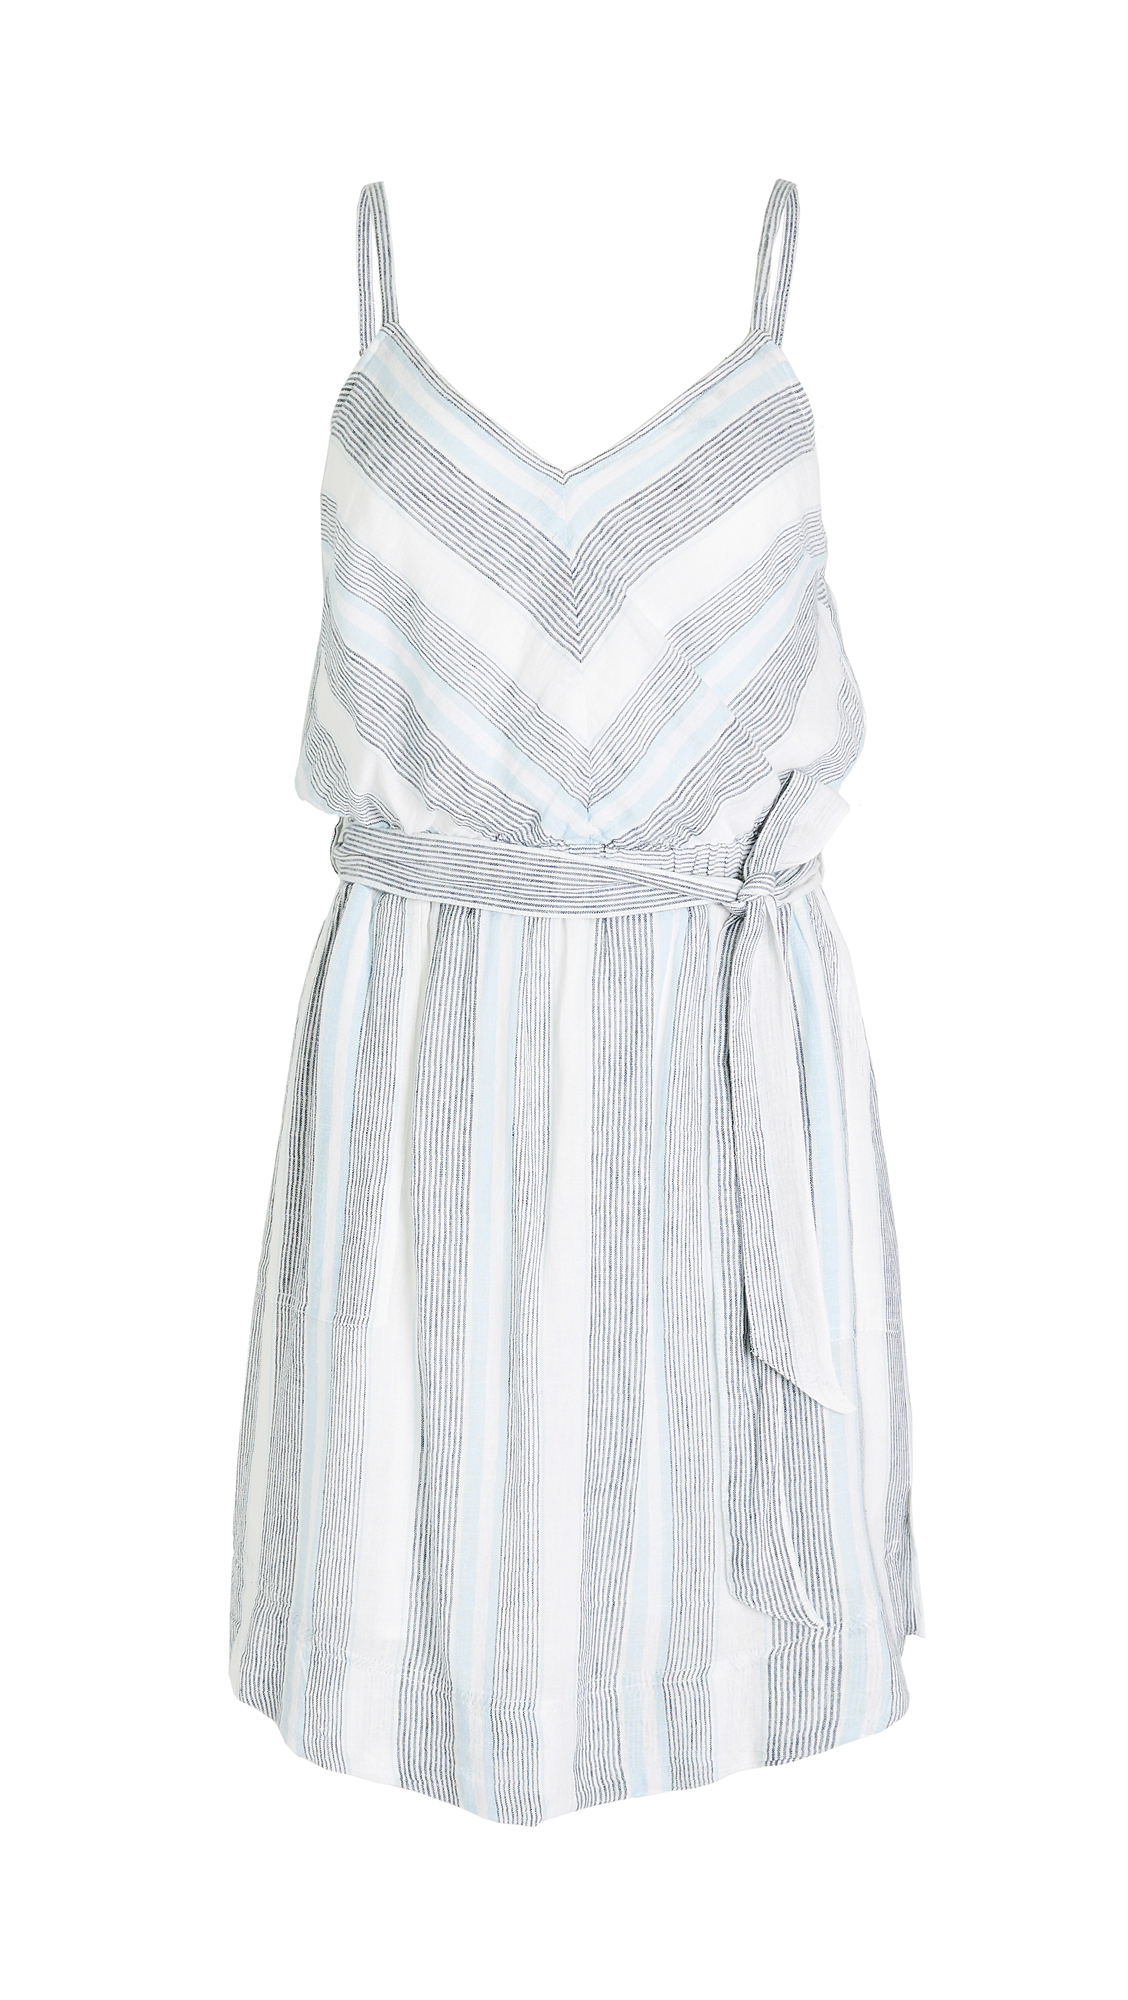 Splendid Sea Stripe Dress